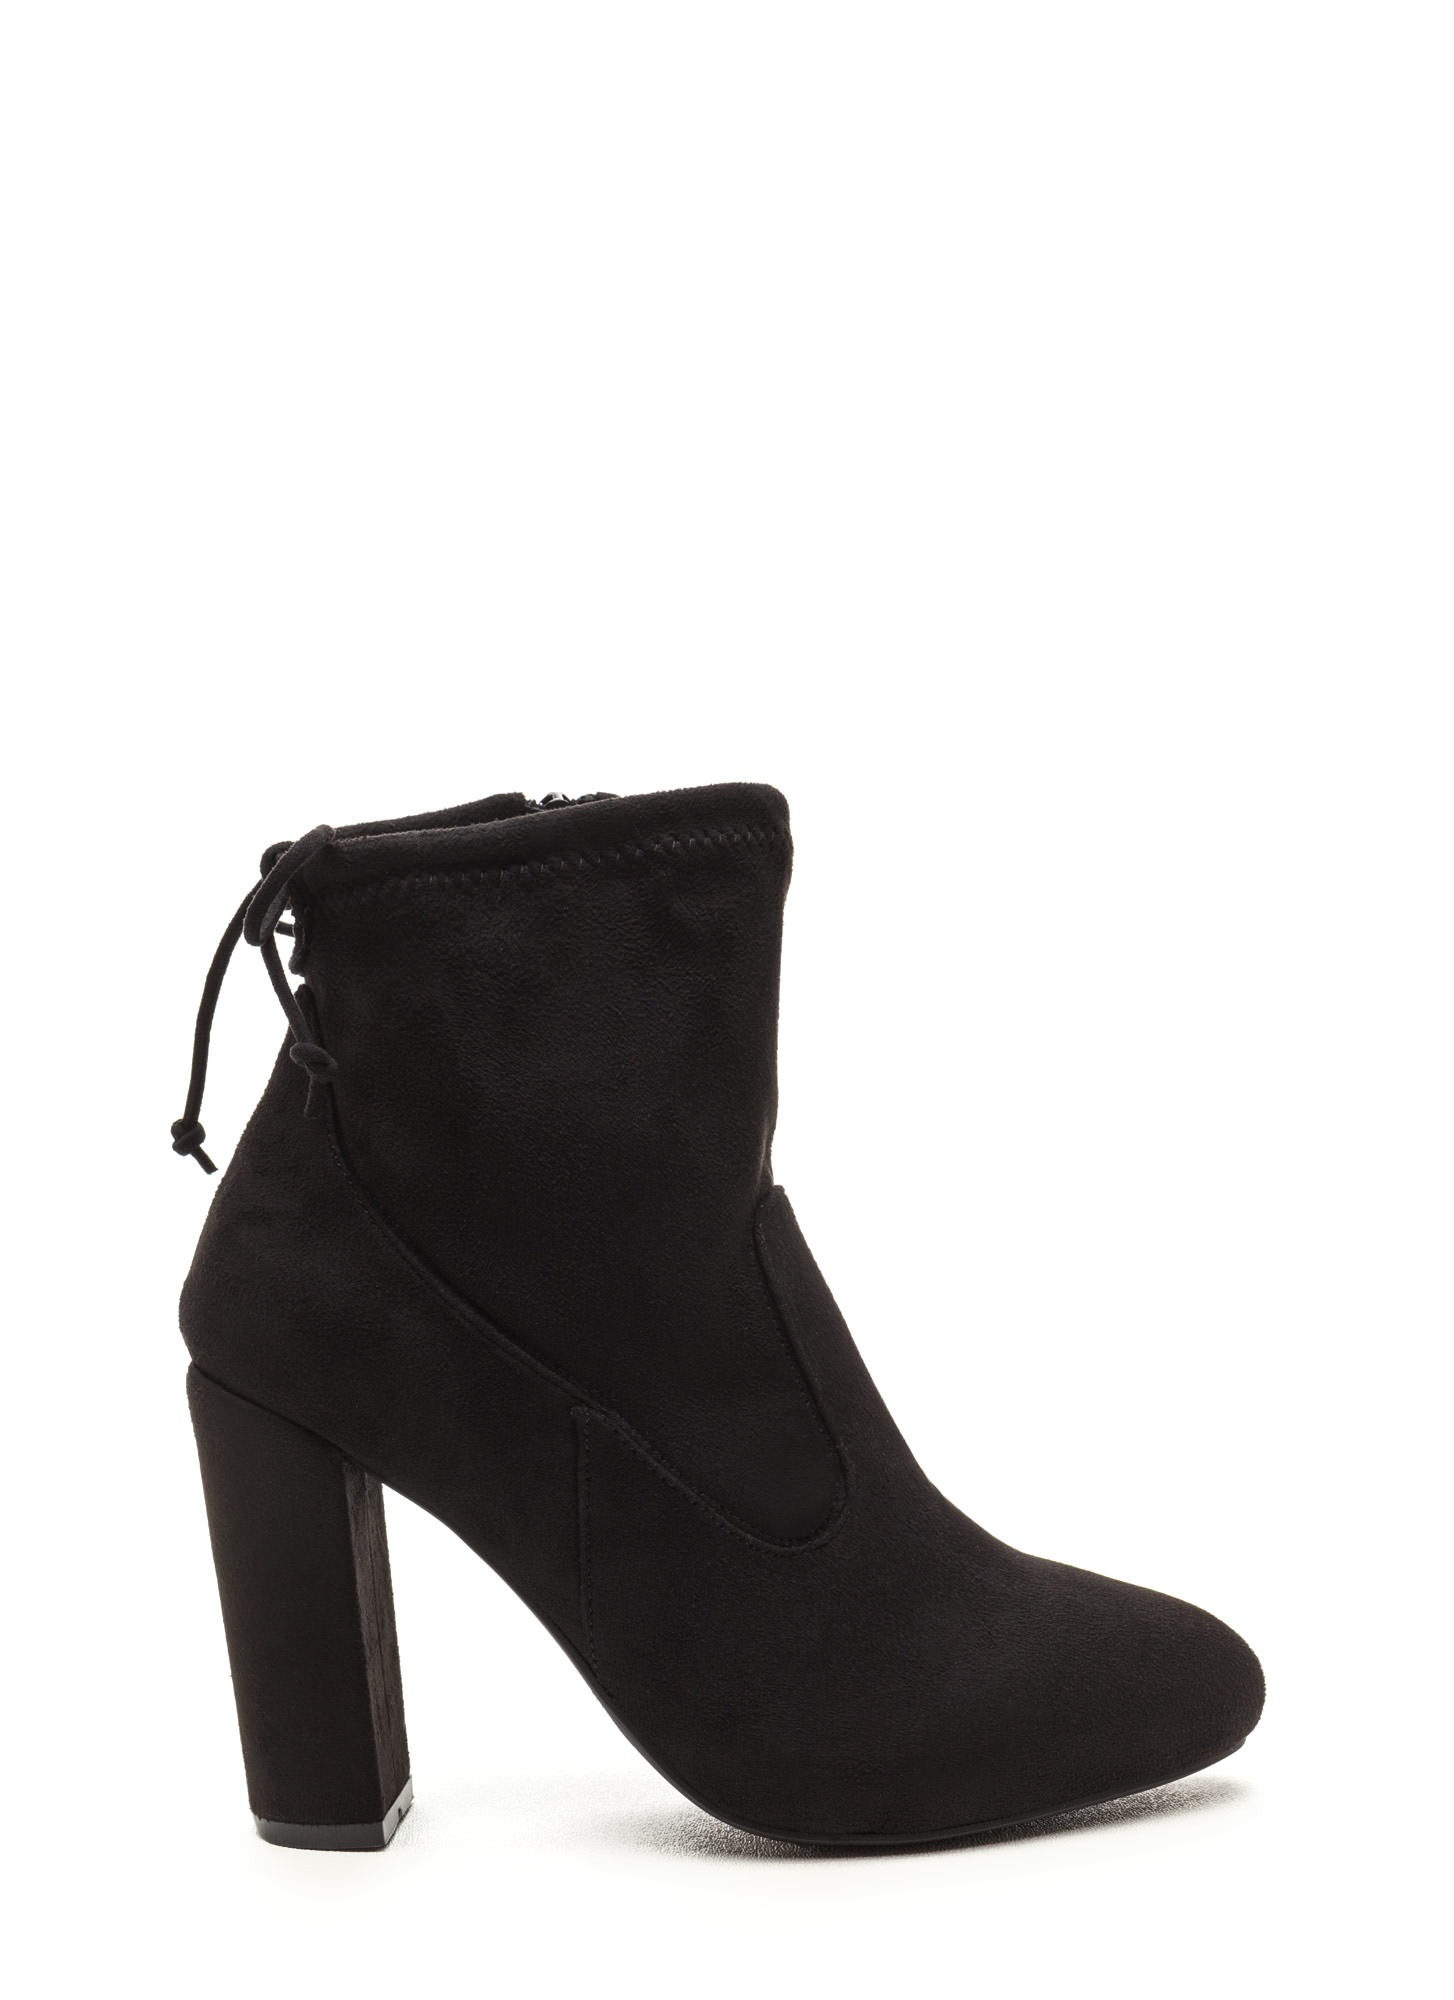 Key To Great Style Chunky Tied Booties BLACK